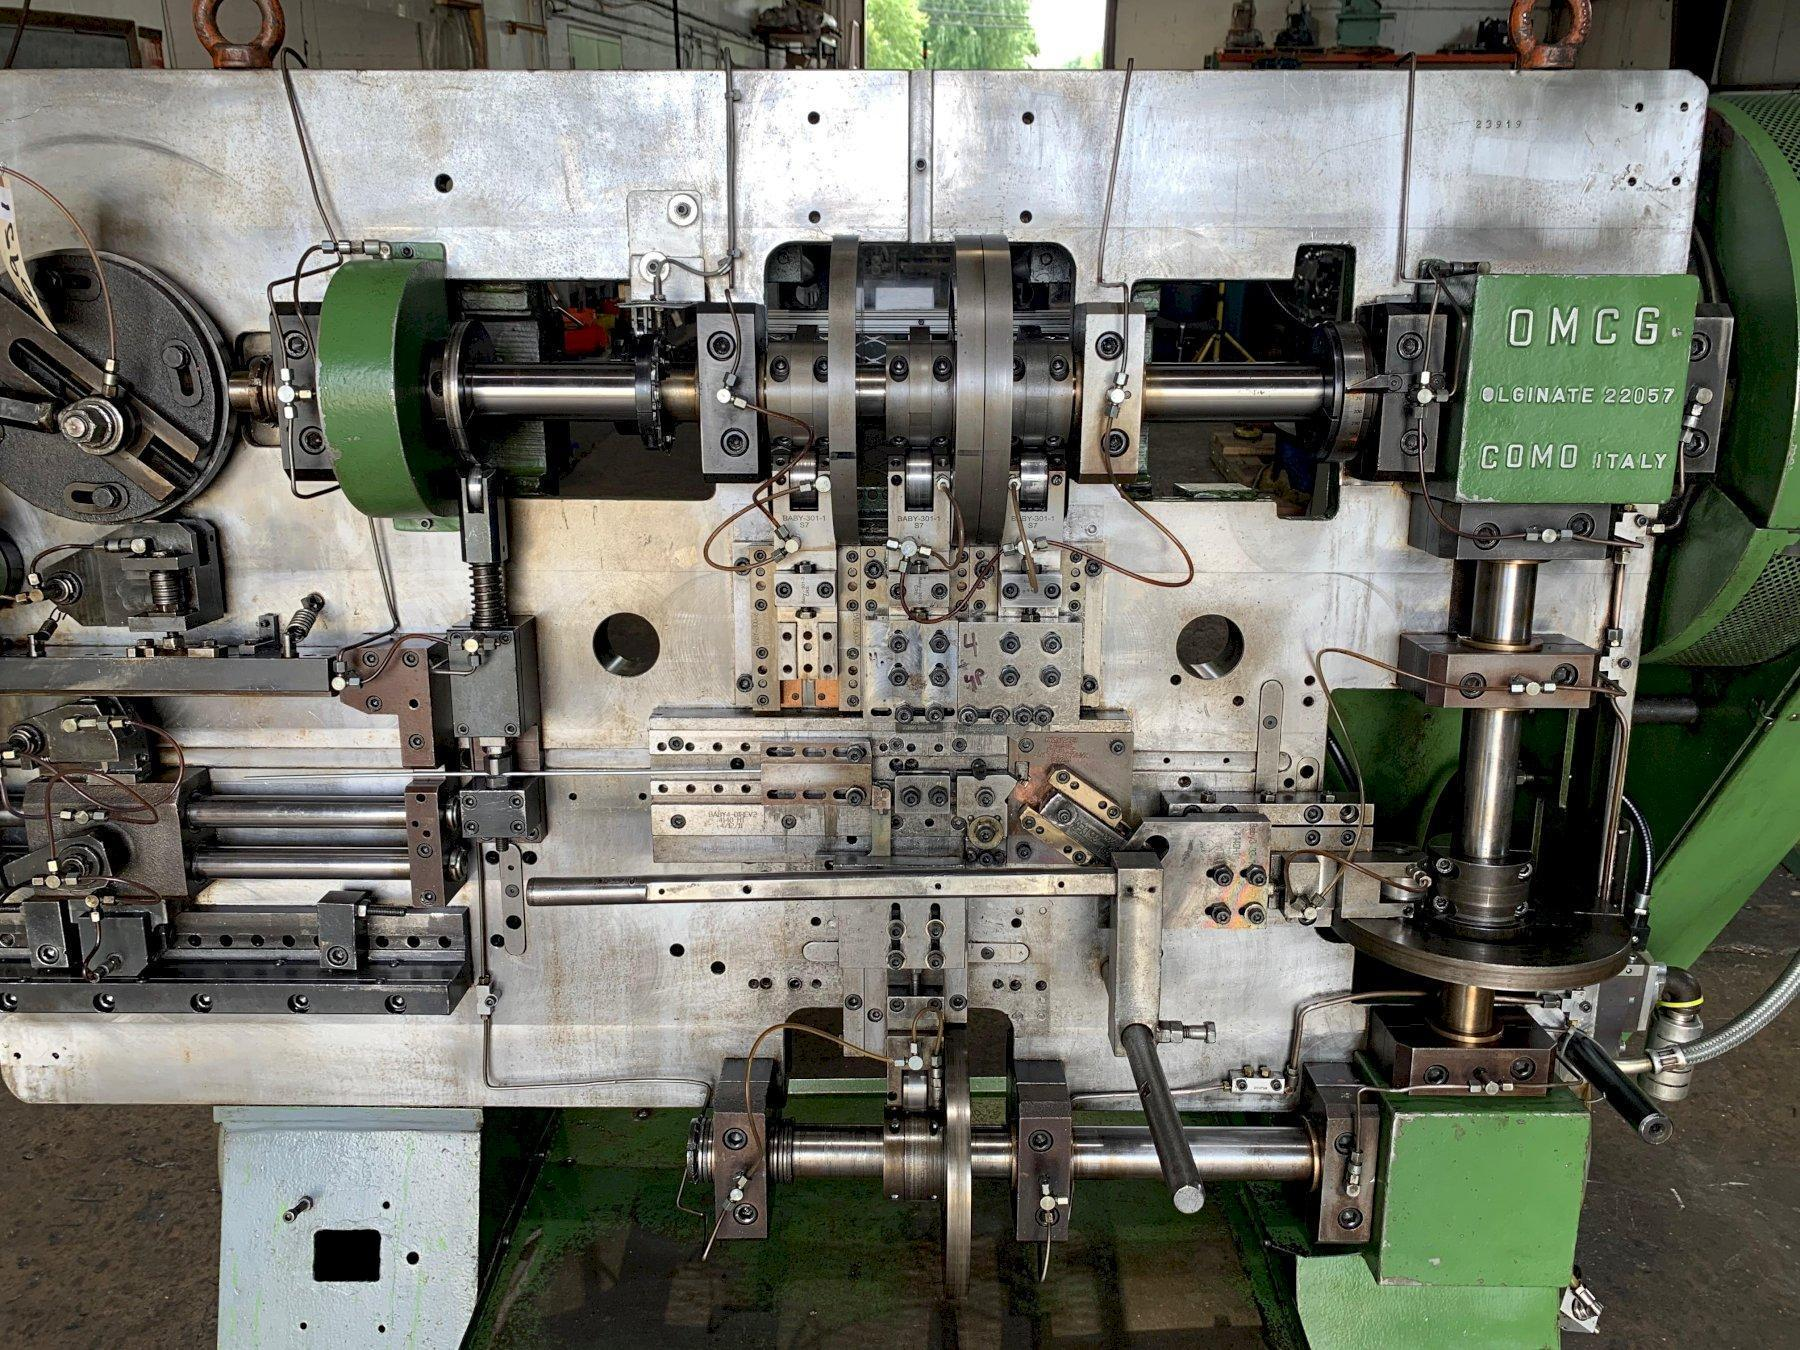 OMCG MODEL 250 WIRE FORMING MACHINE